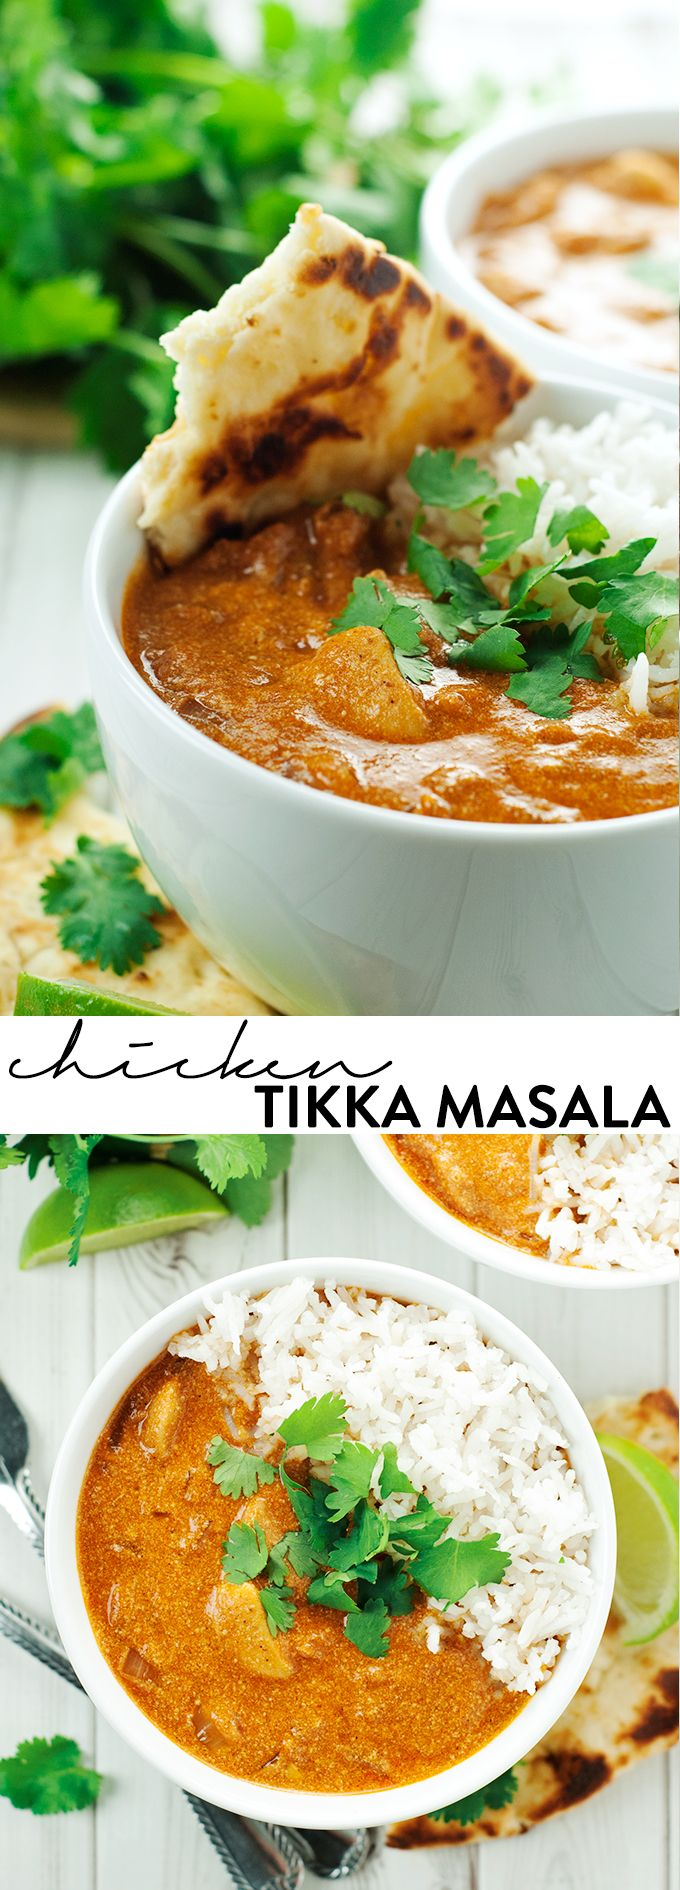 Easy Chicken Tikka Masala, ready in 30 minutes! asimplepantry.com #LoveBlooms #ad